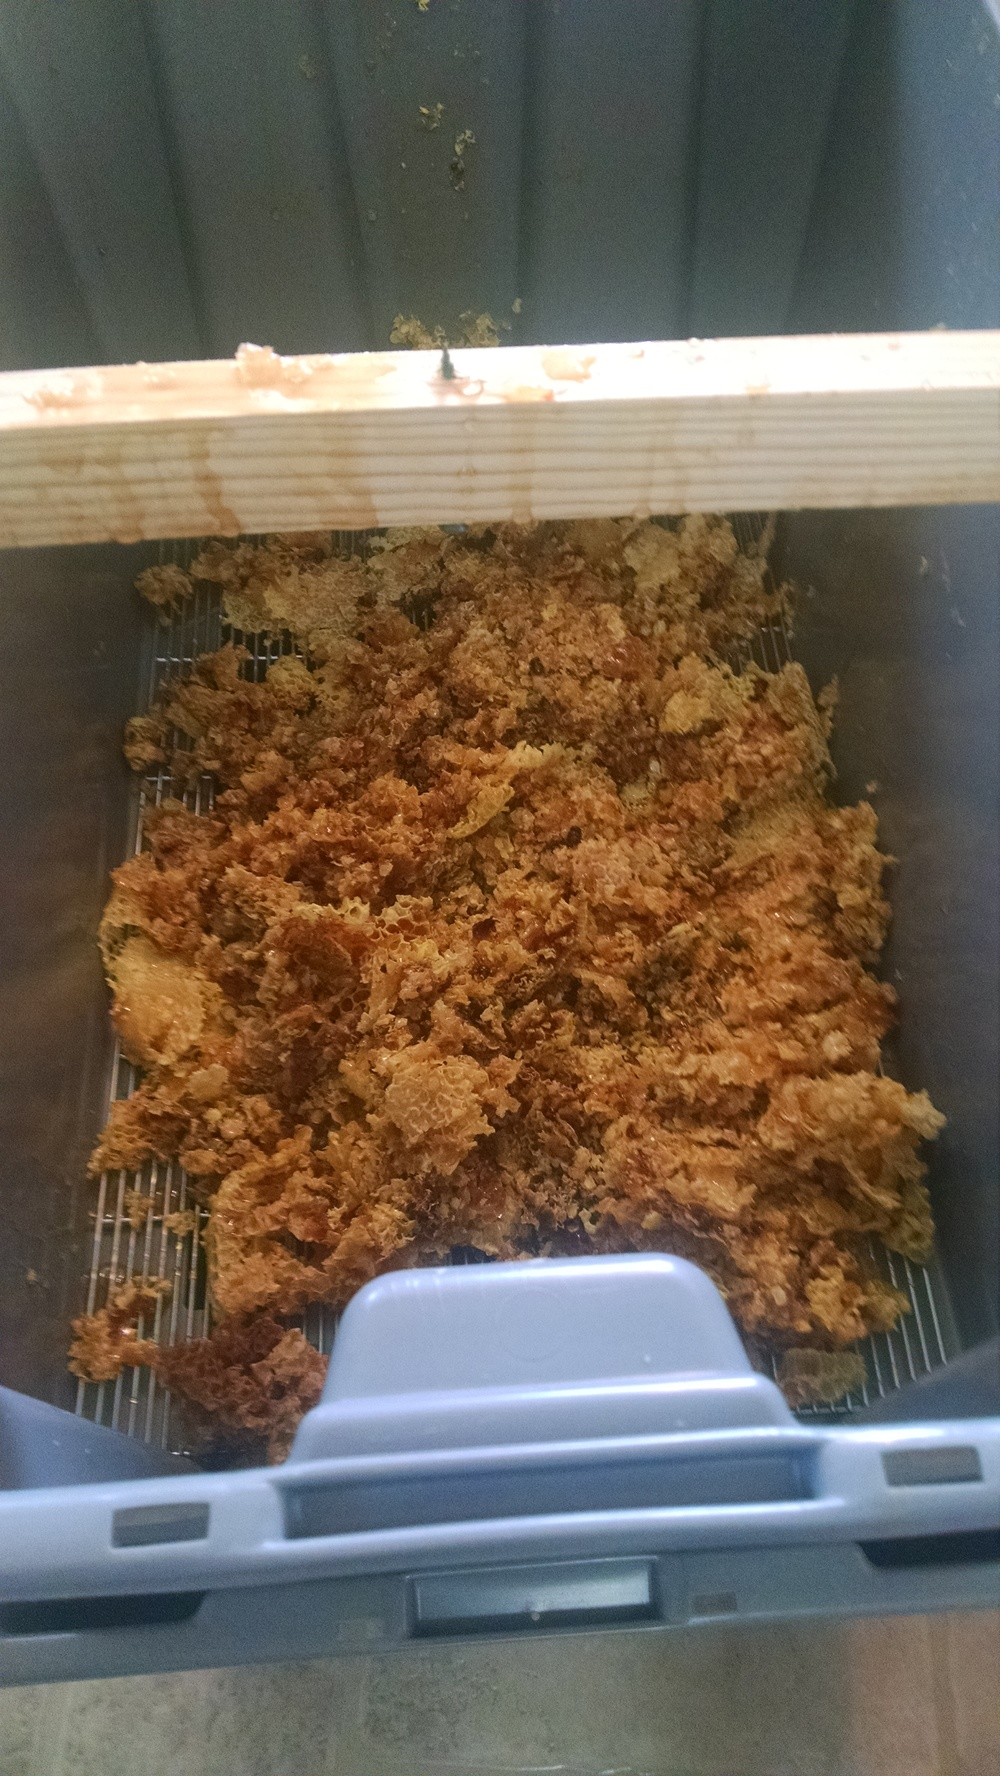 All the honey dripping out of the wax cappings. Saved a good two pounds of honey this way!